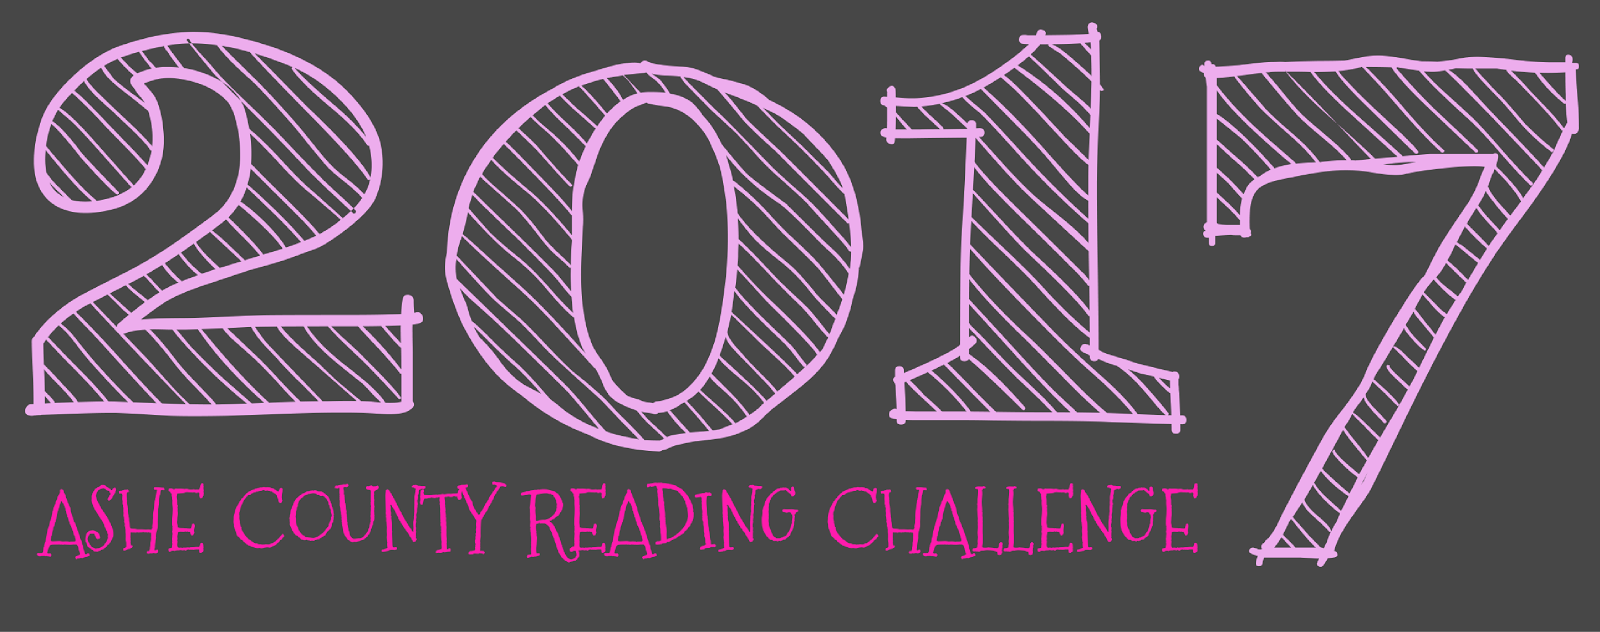 Ashe Library's 2017 Reading Challenge